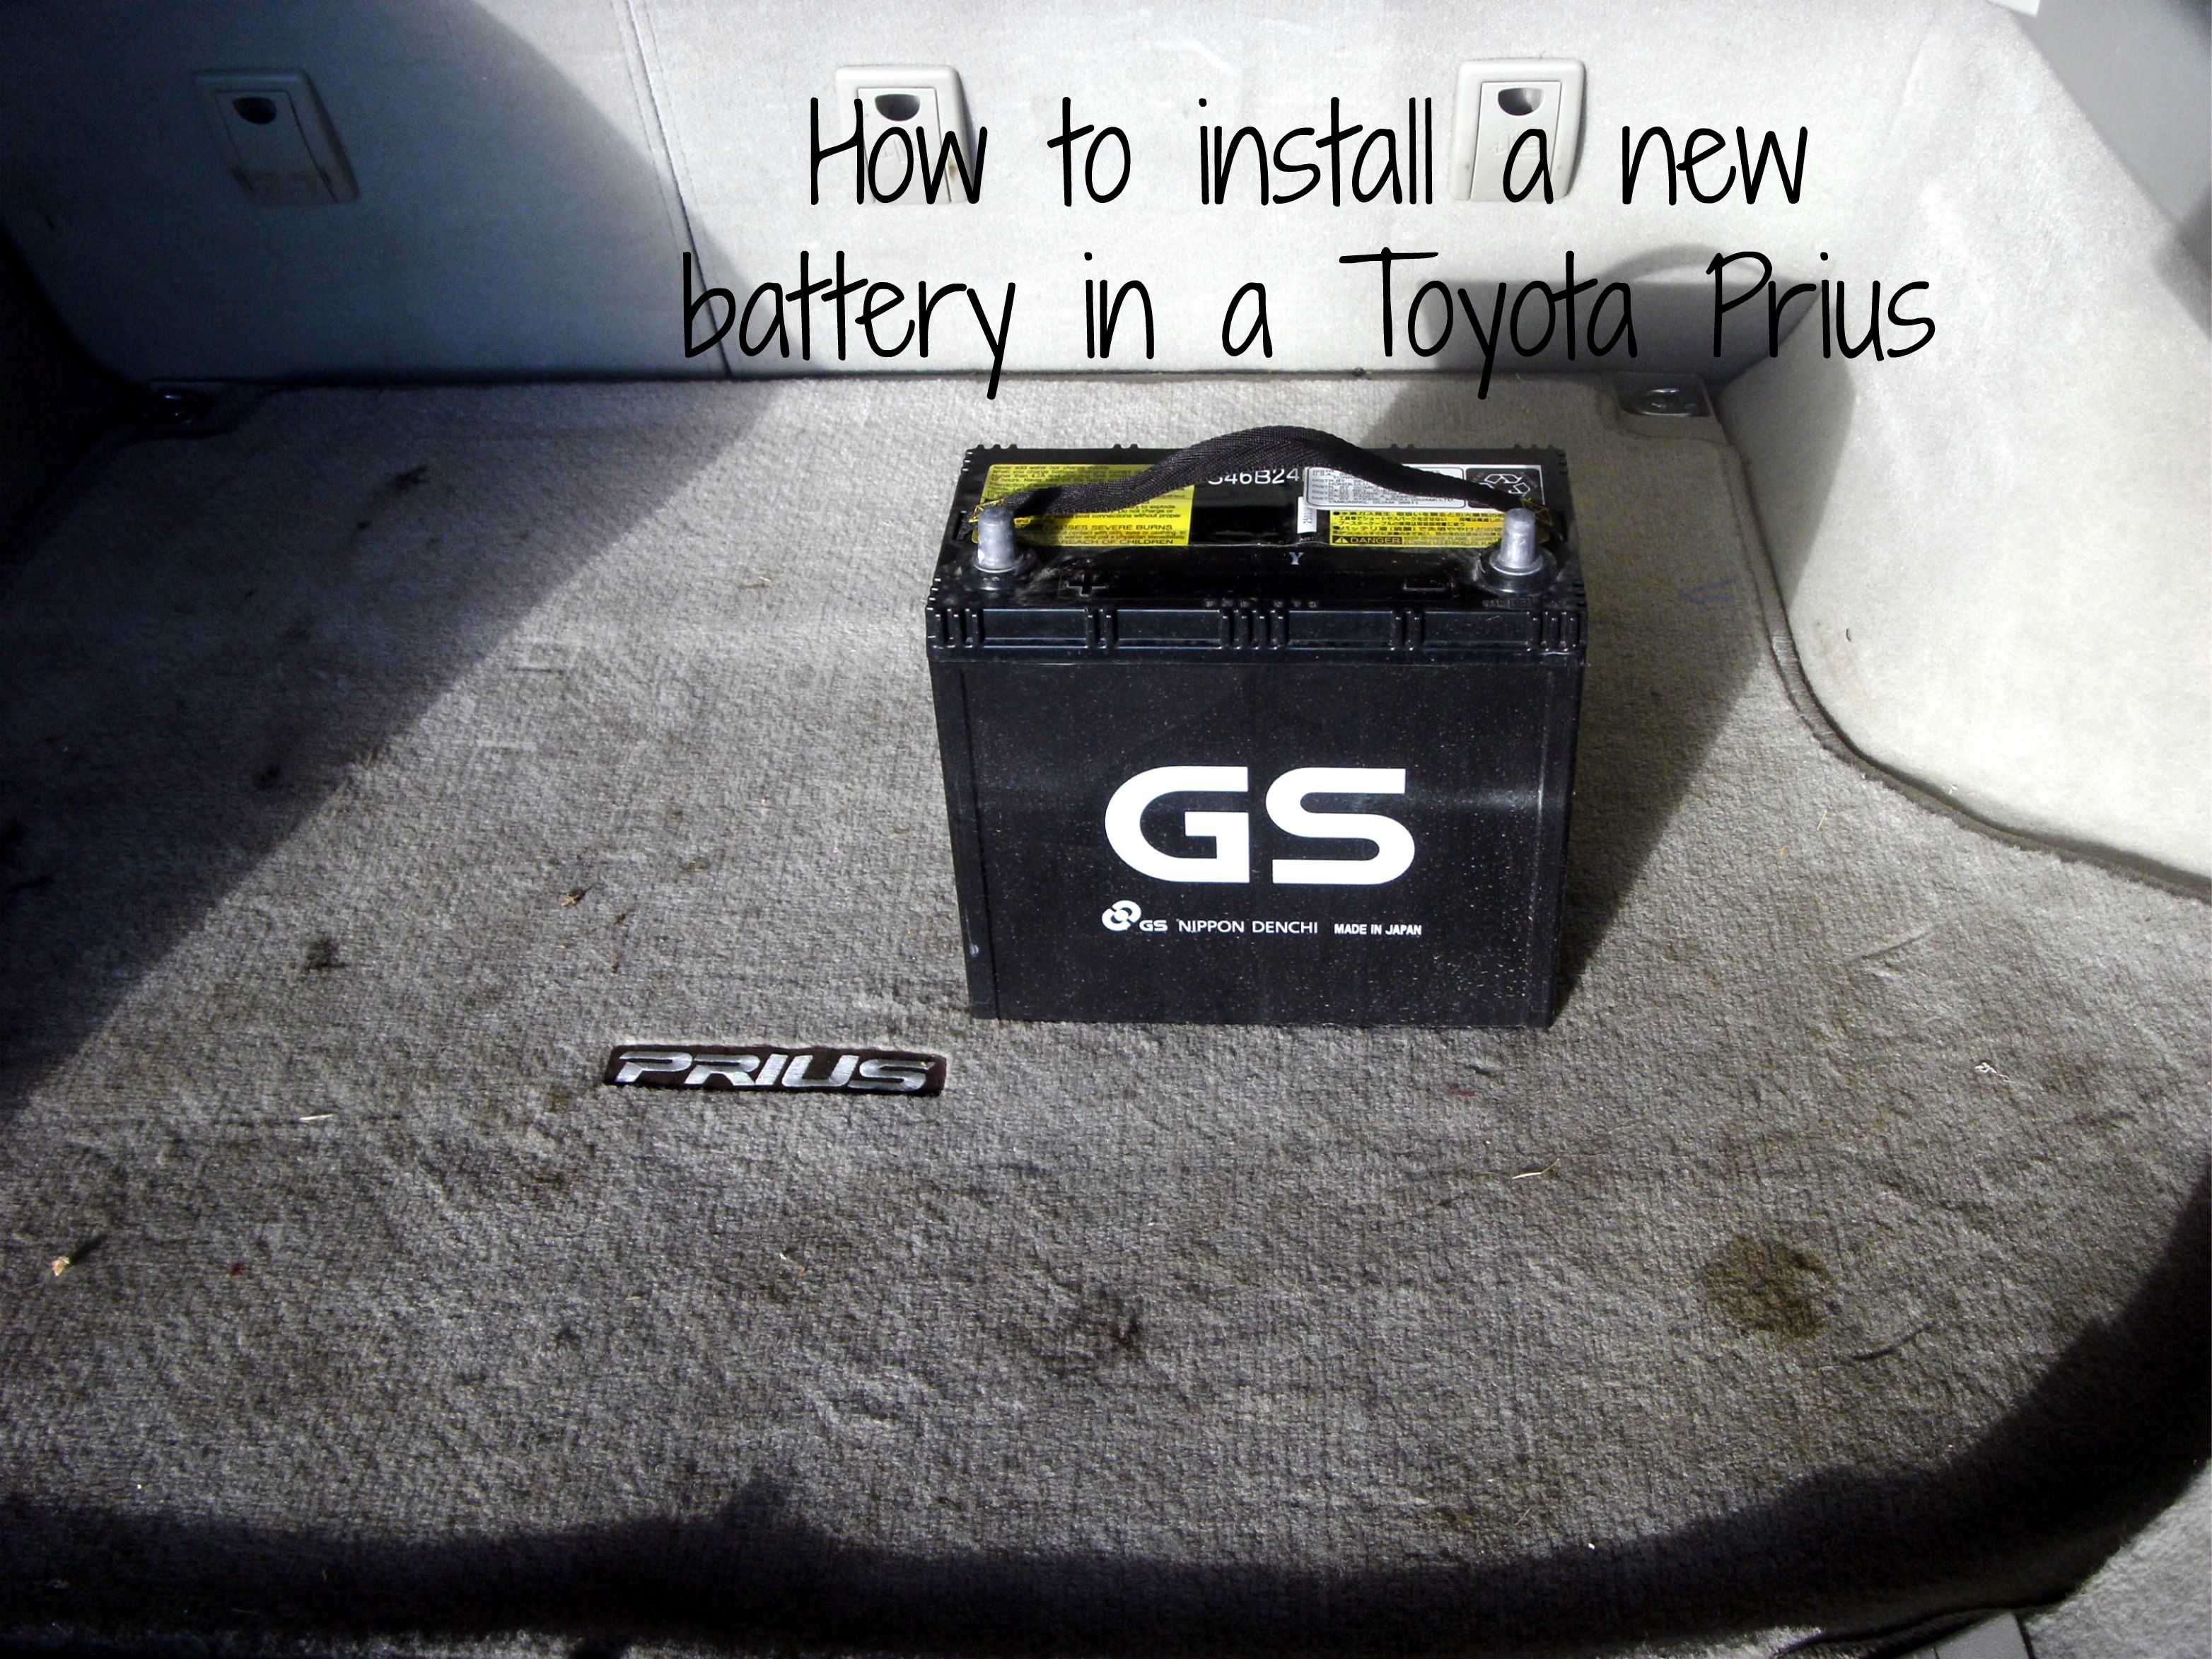 How to Change a 12V Prius Battery 12V Battery Replacement